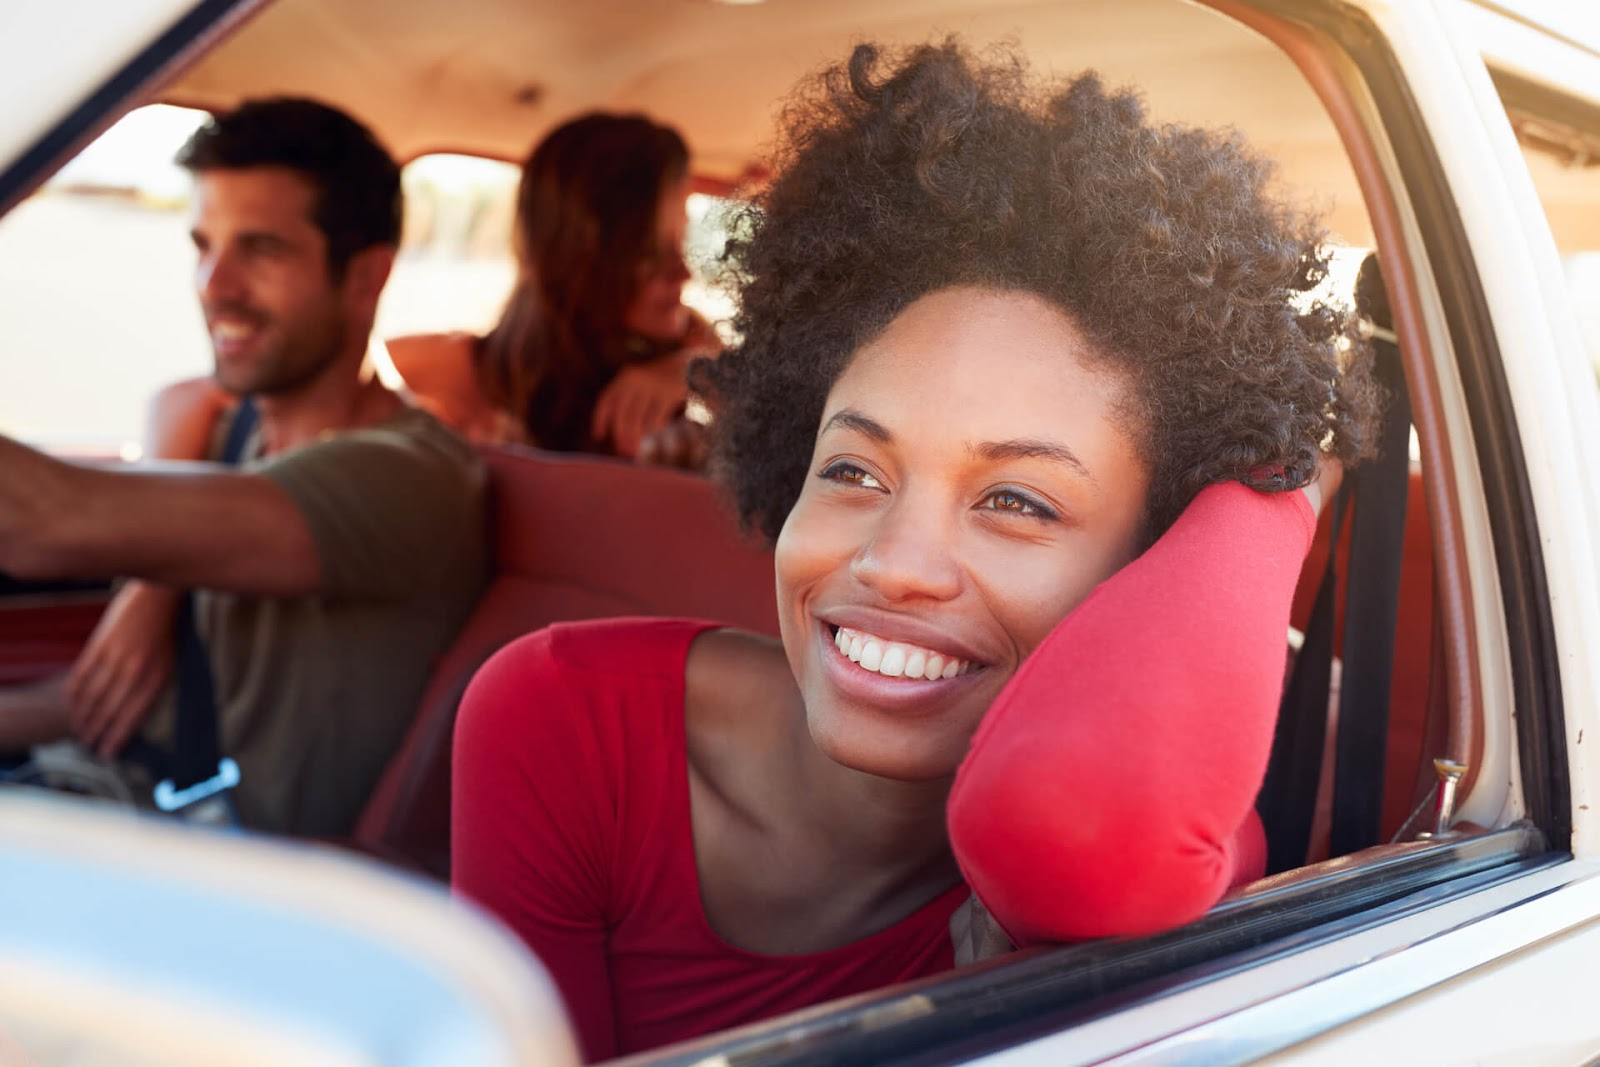 Woman enjoying a car ride with some friends